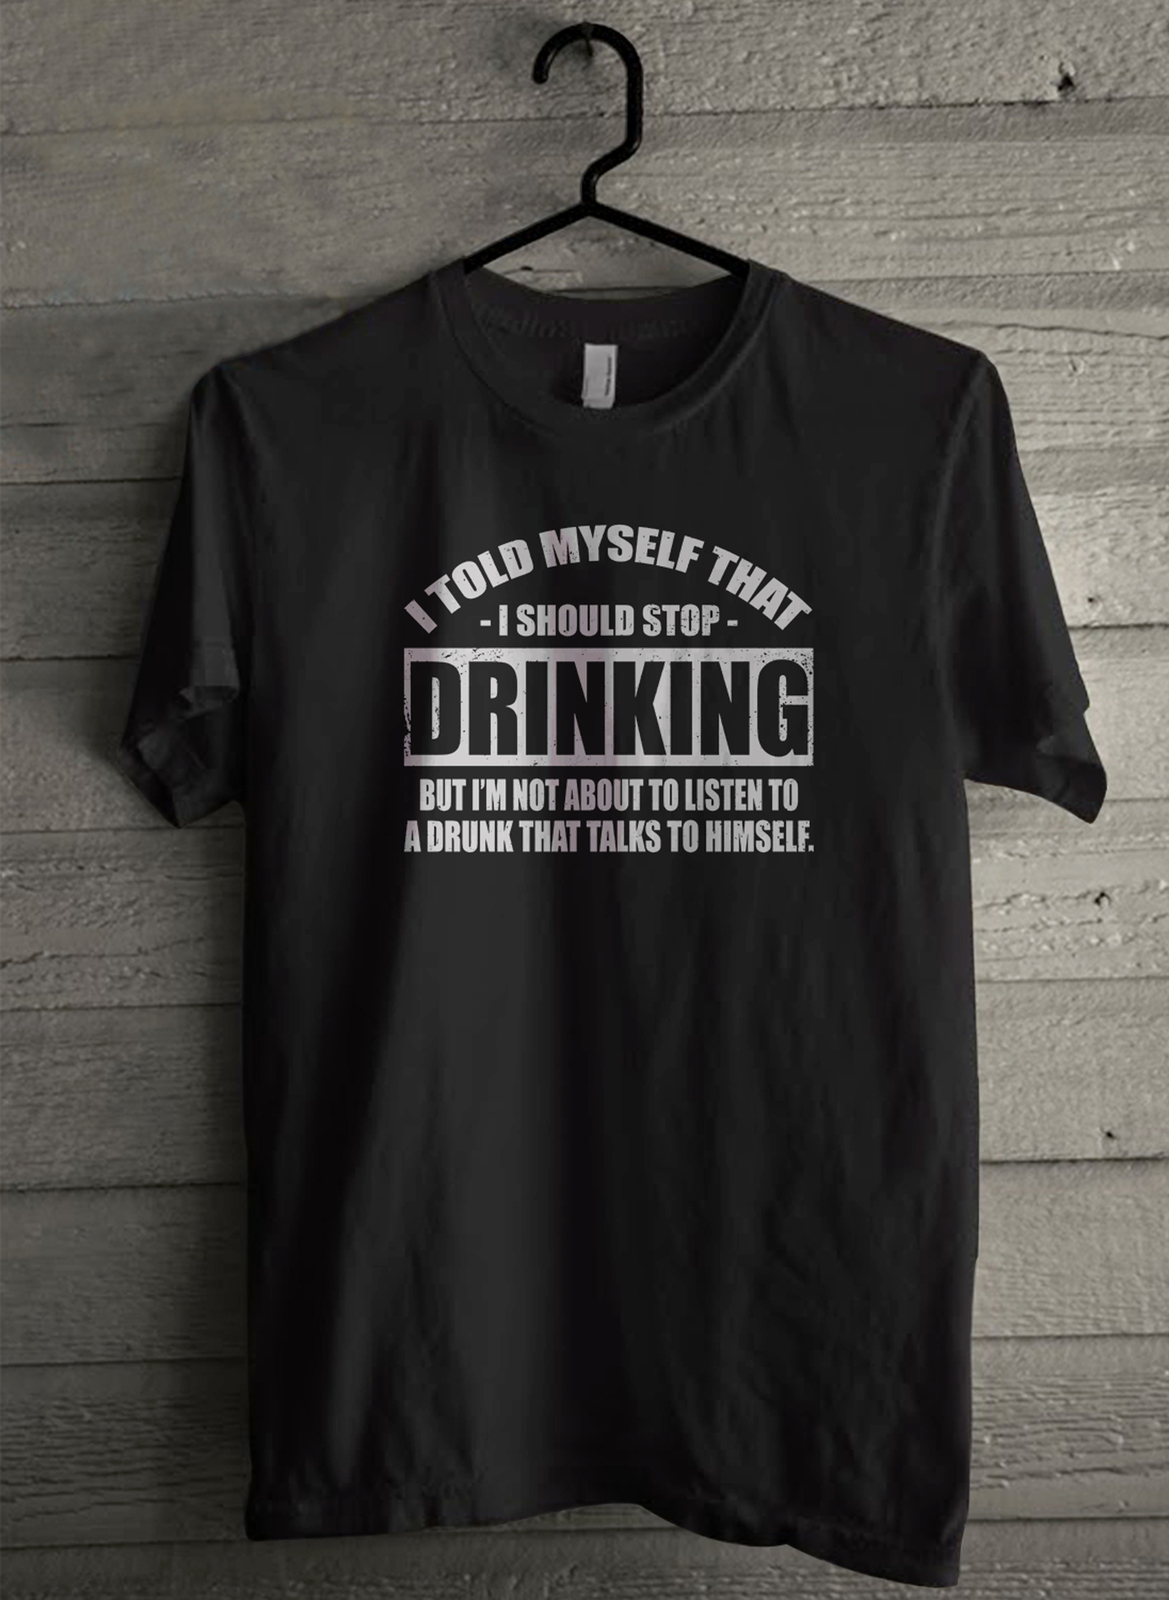 I Told Myself That I Should Stop Drinking - Custom Men's T-Shirt (4155)